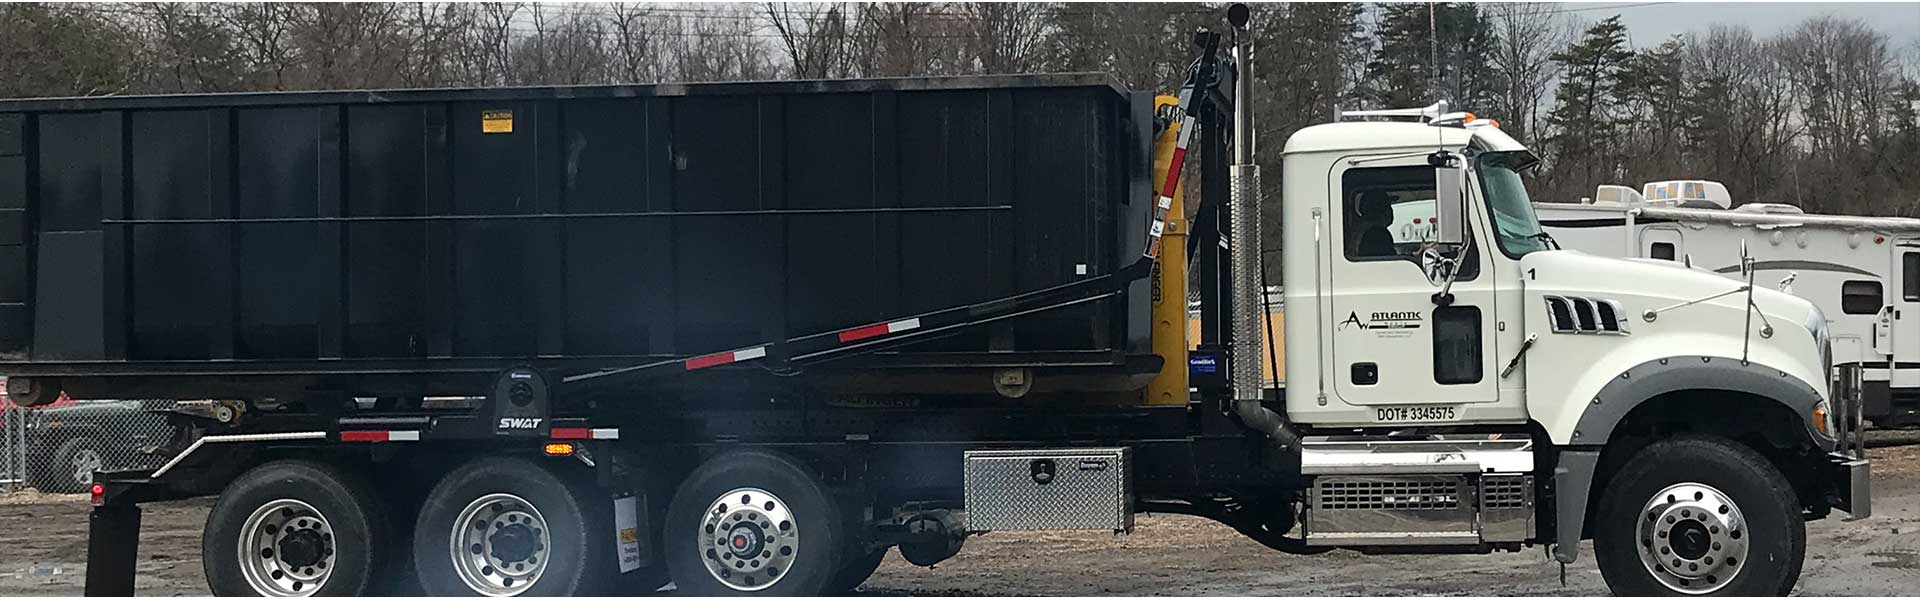 Roll-off container, Hauling service in Baltimore